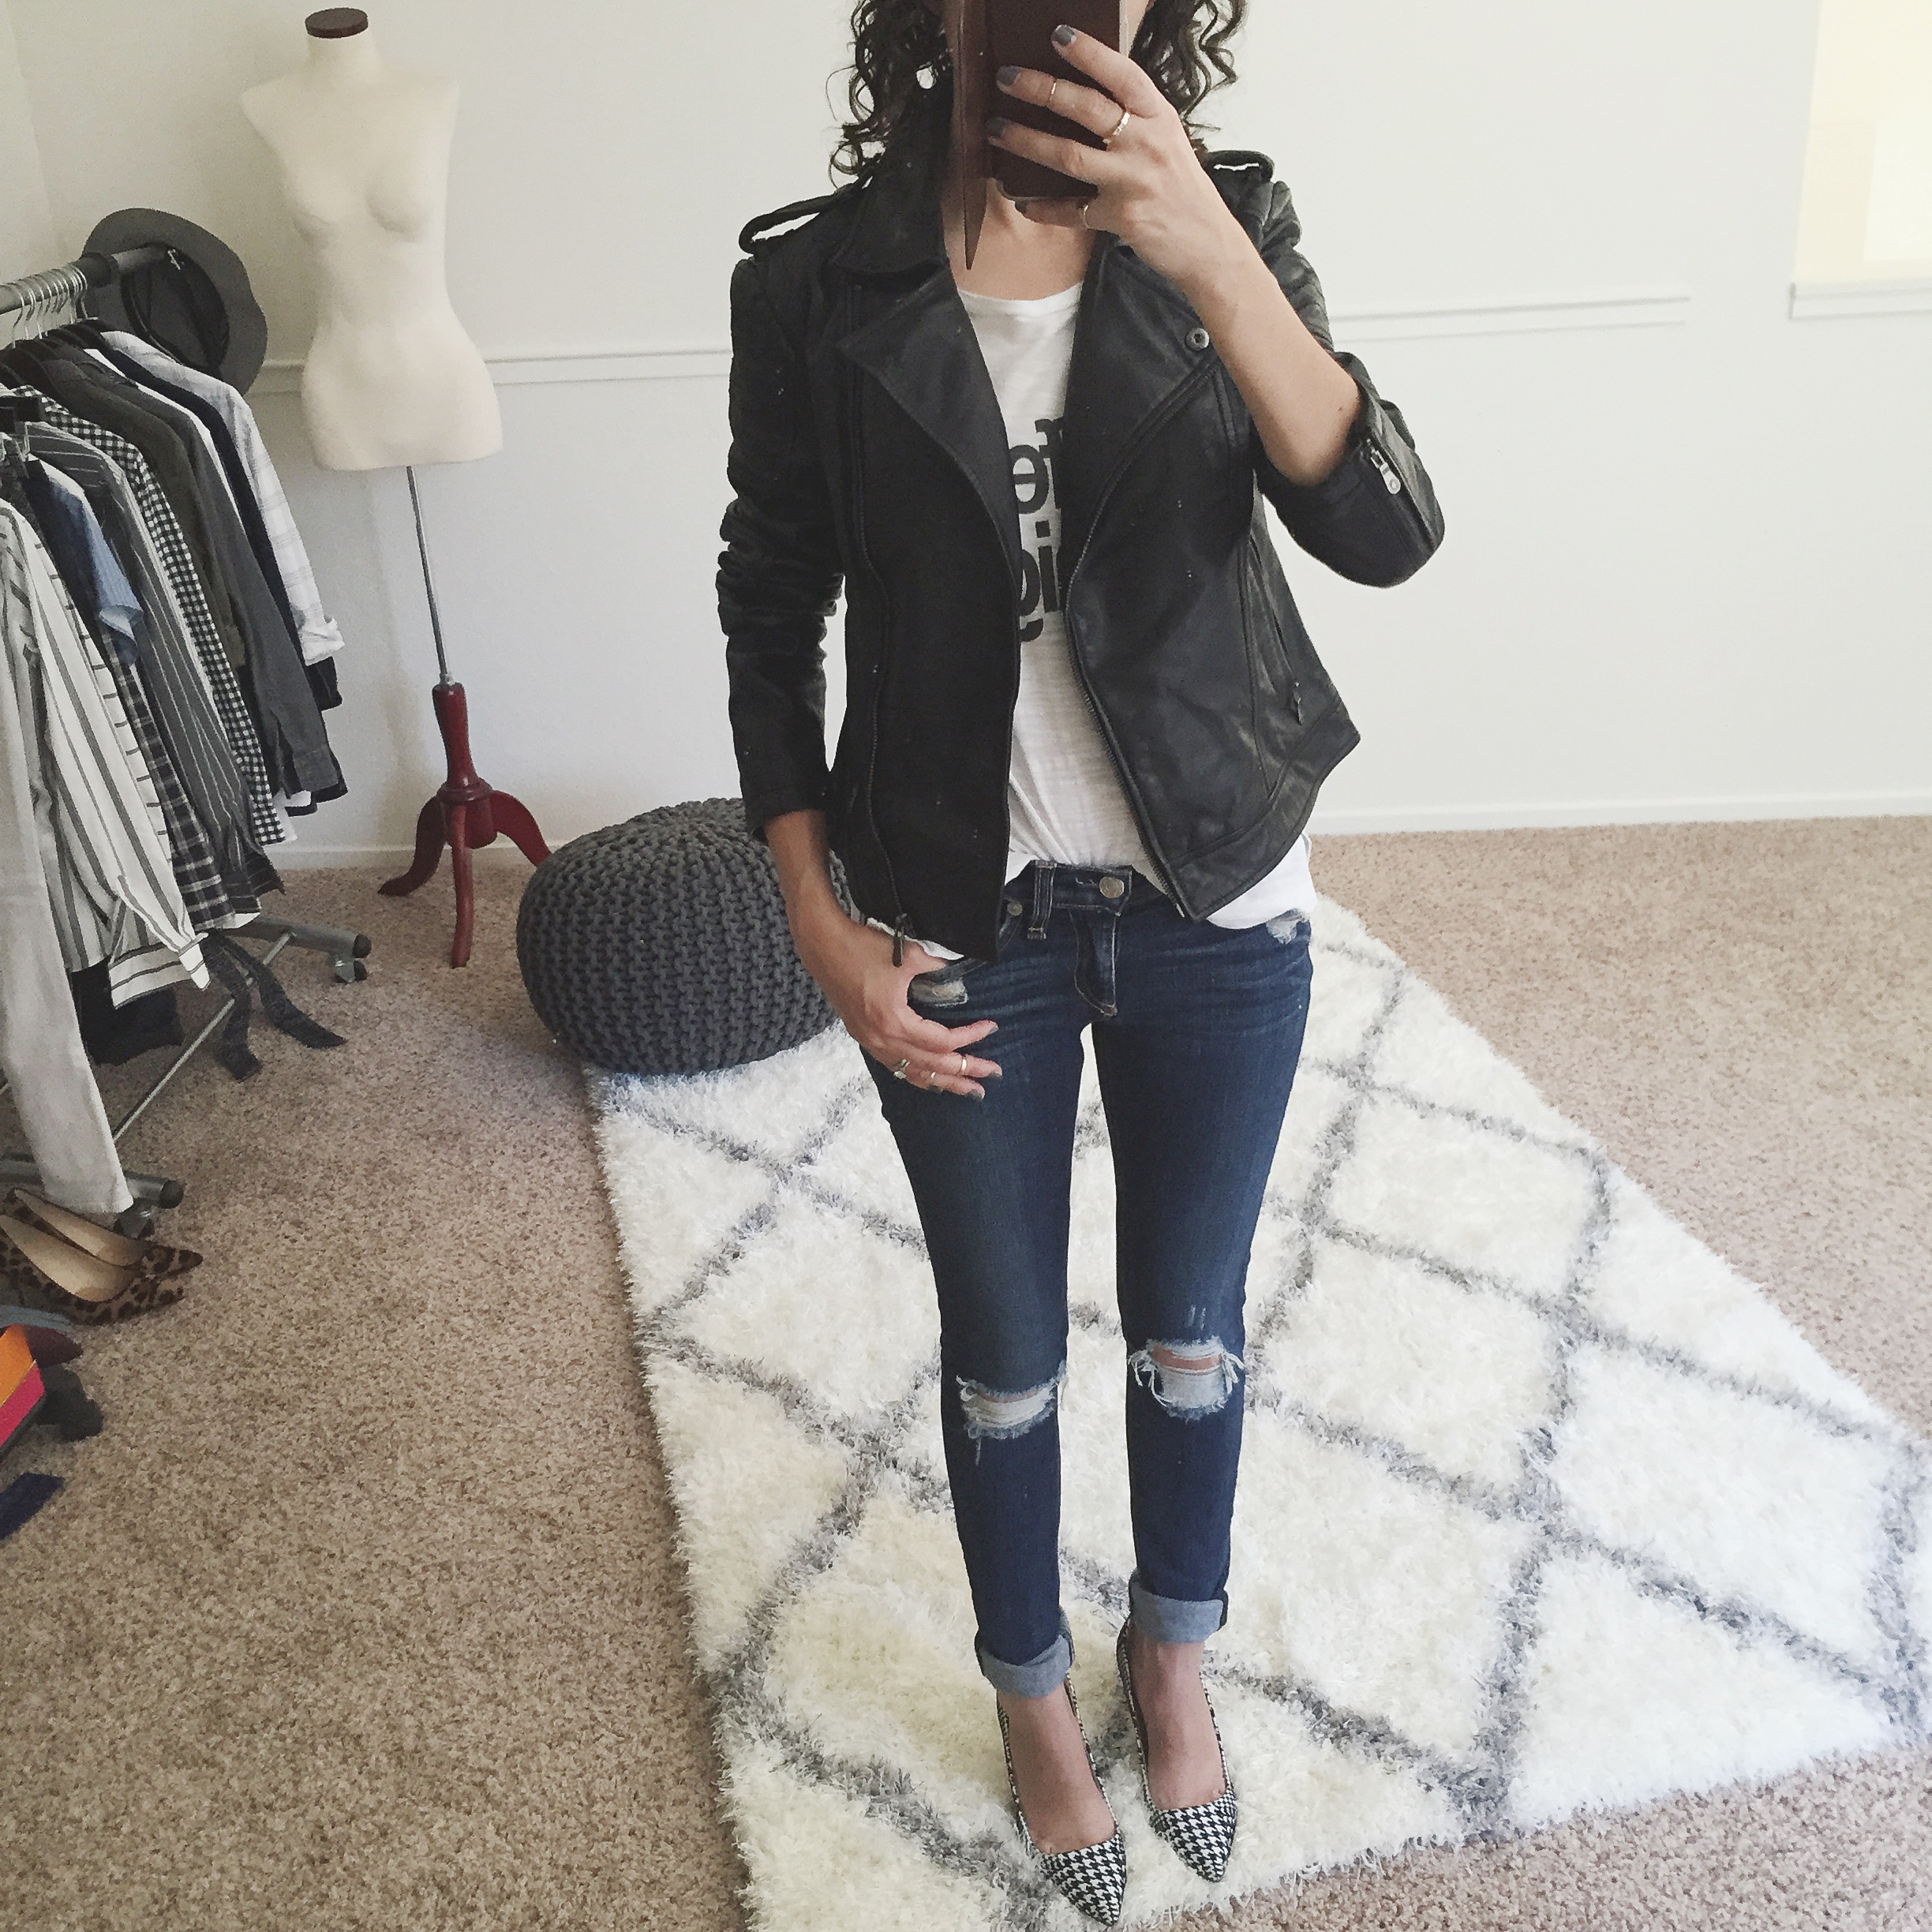 Fit Review Friday – Petite Leather Jacket